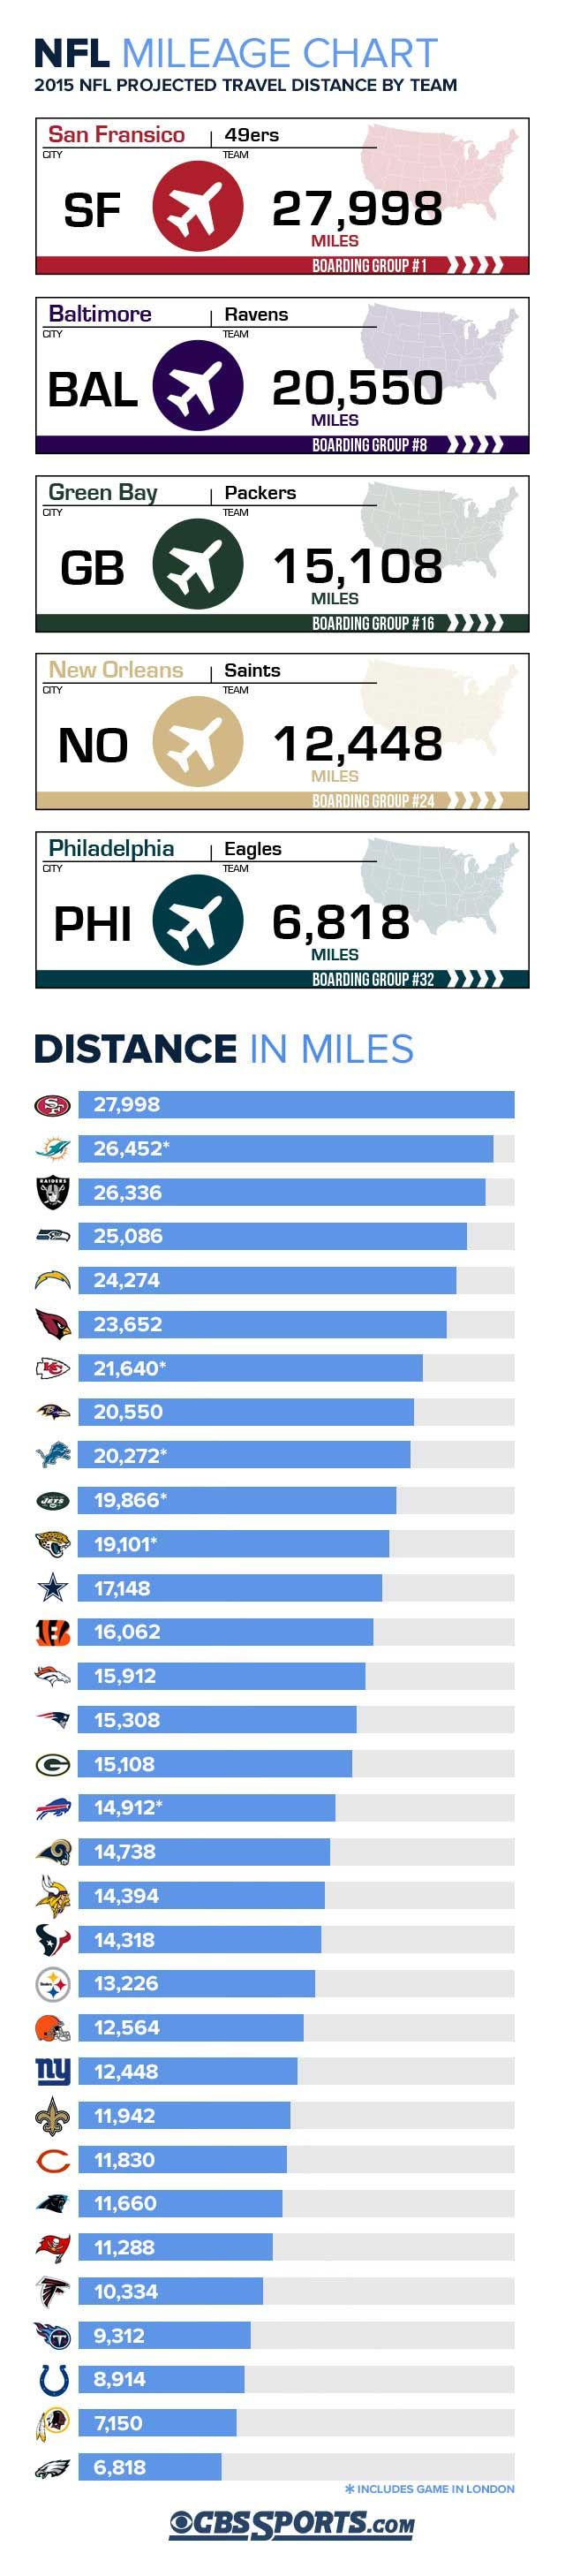 2015 NFL schedule: 49ers travel most miles, Eagles the fewest